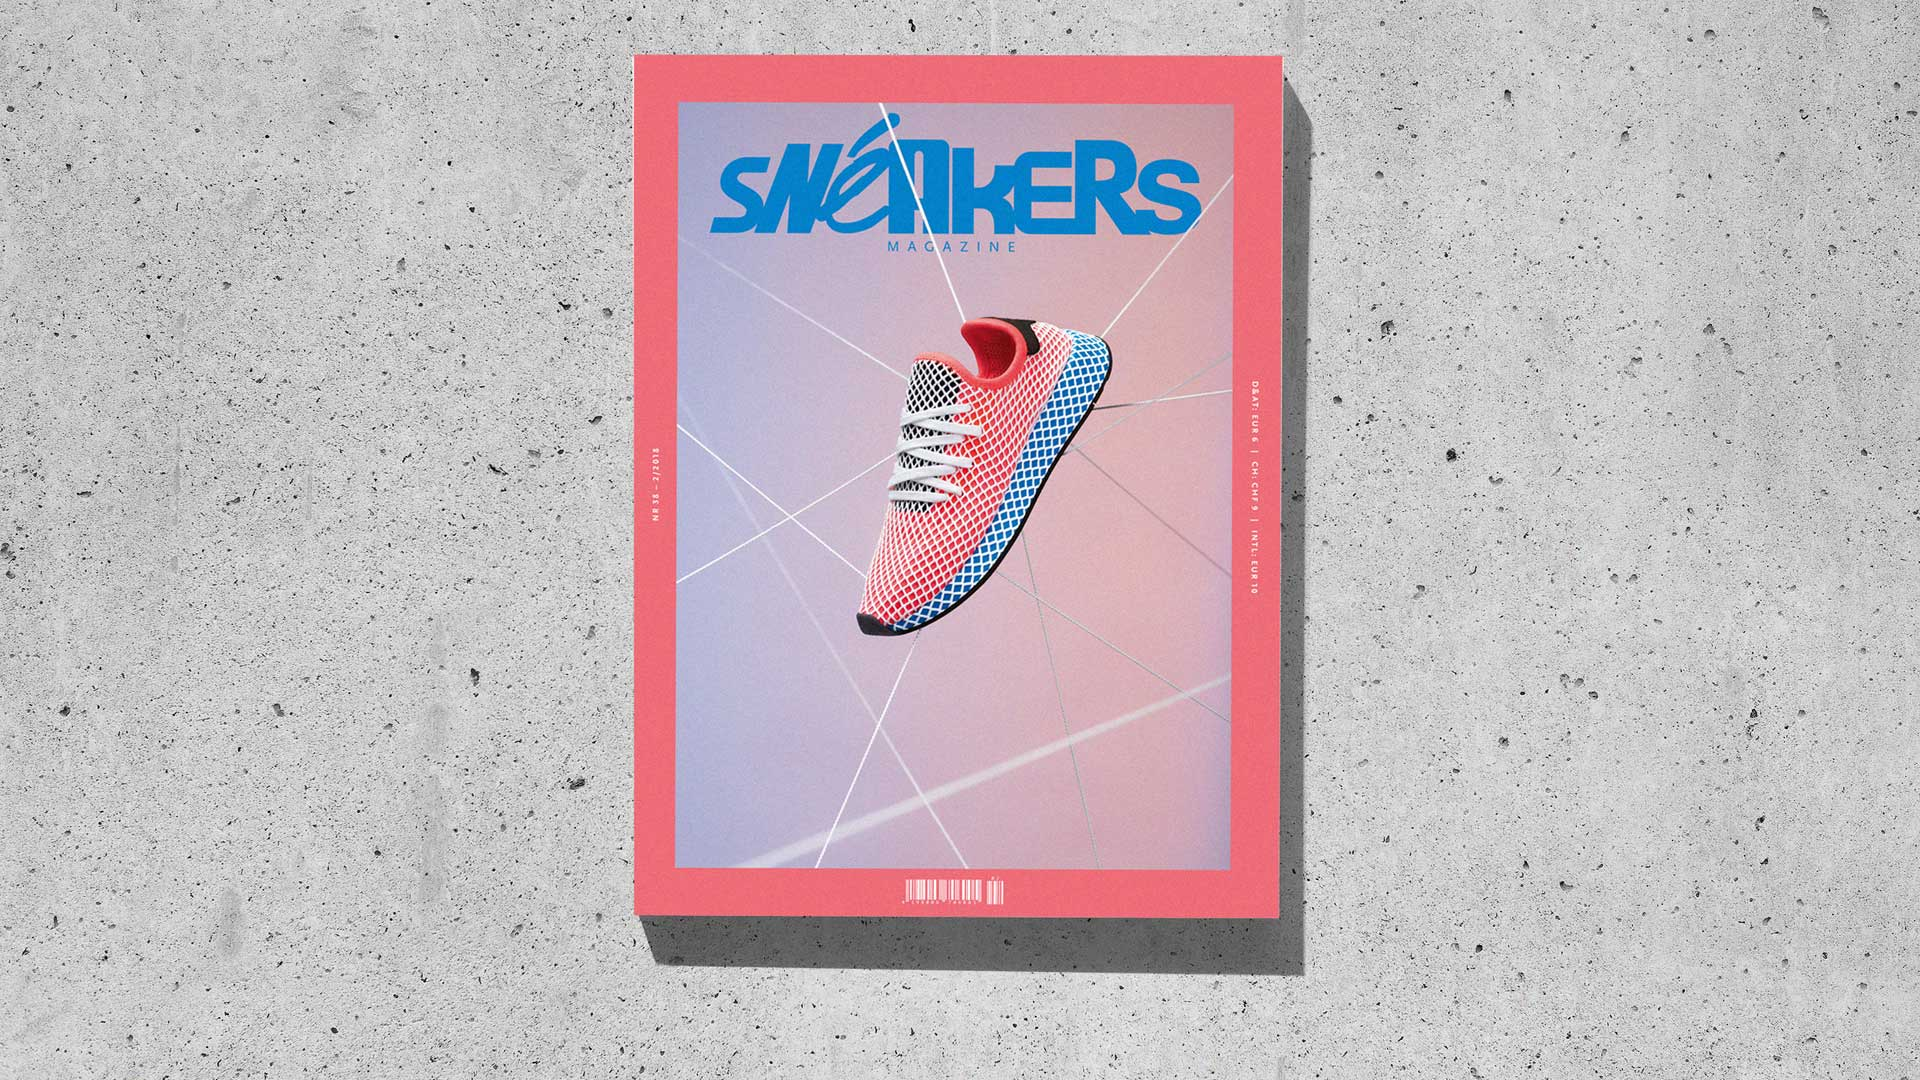 Sneakers Mag April 2018 (Issue 38) - Cover (Slider Concrete)